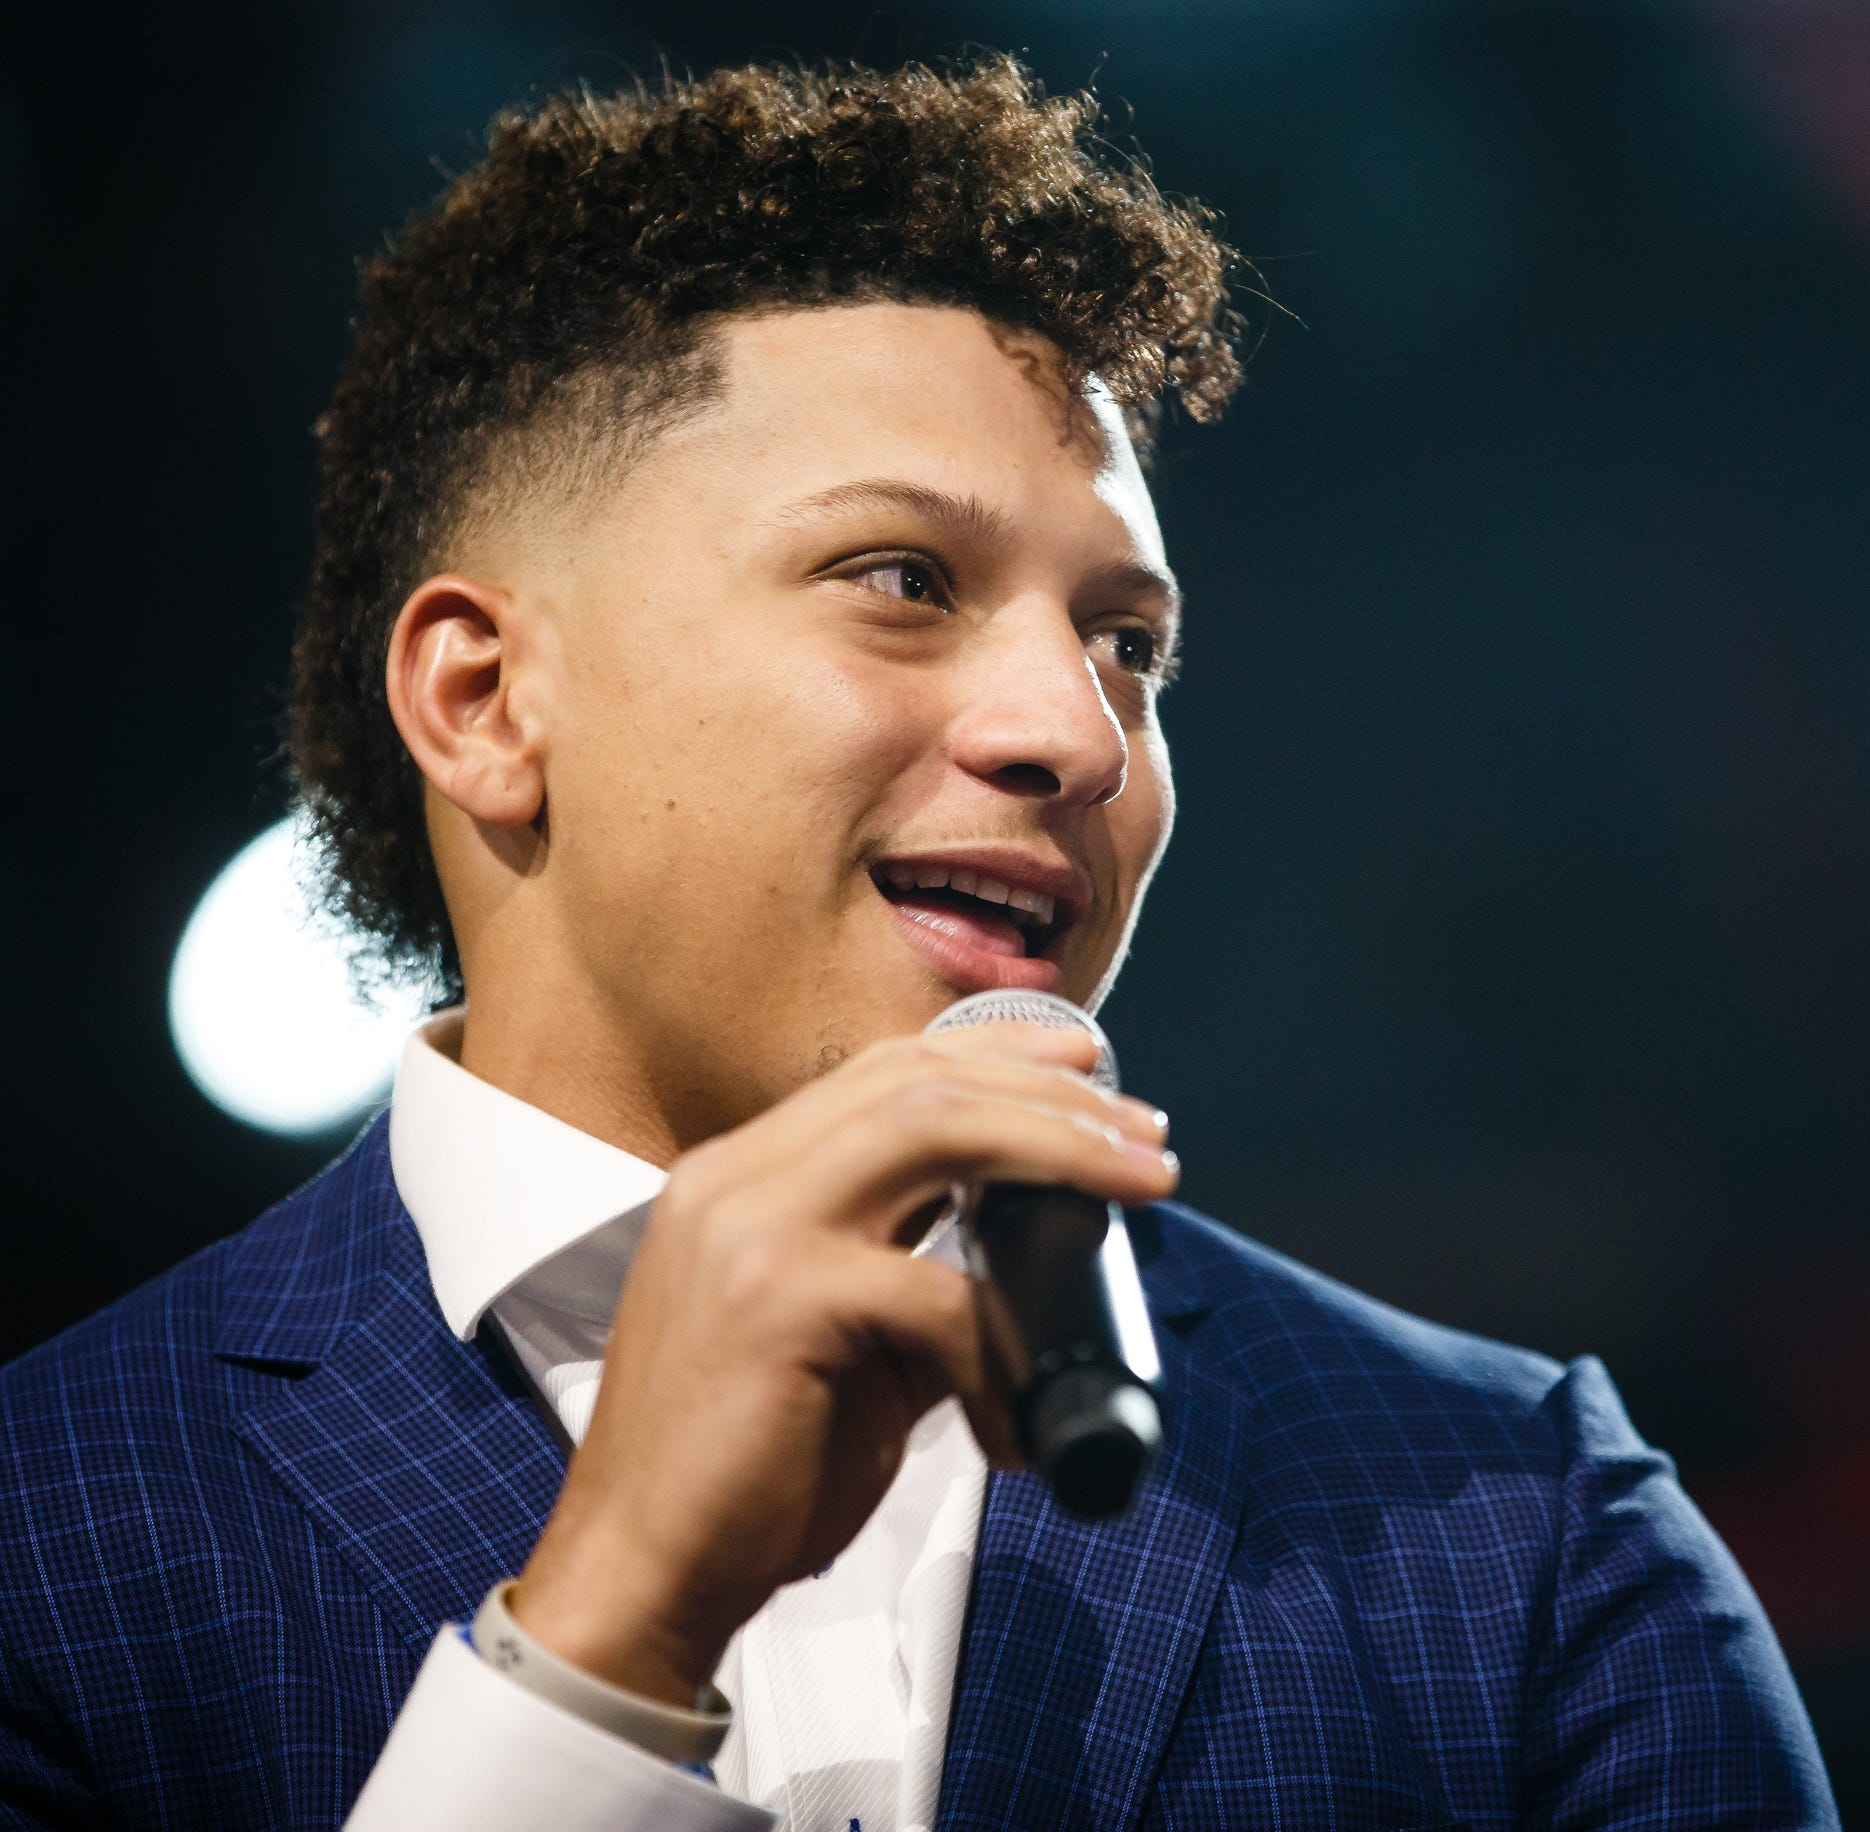 Get ready to see Patrick Mahomes cereal through multi-year contract with Hy-Vee